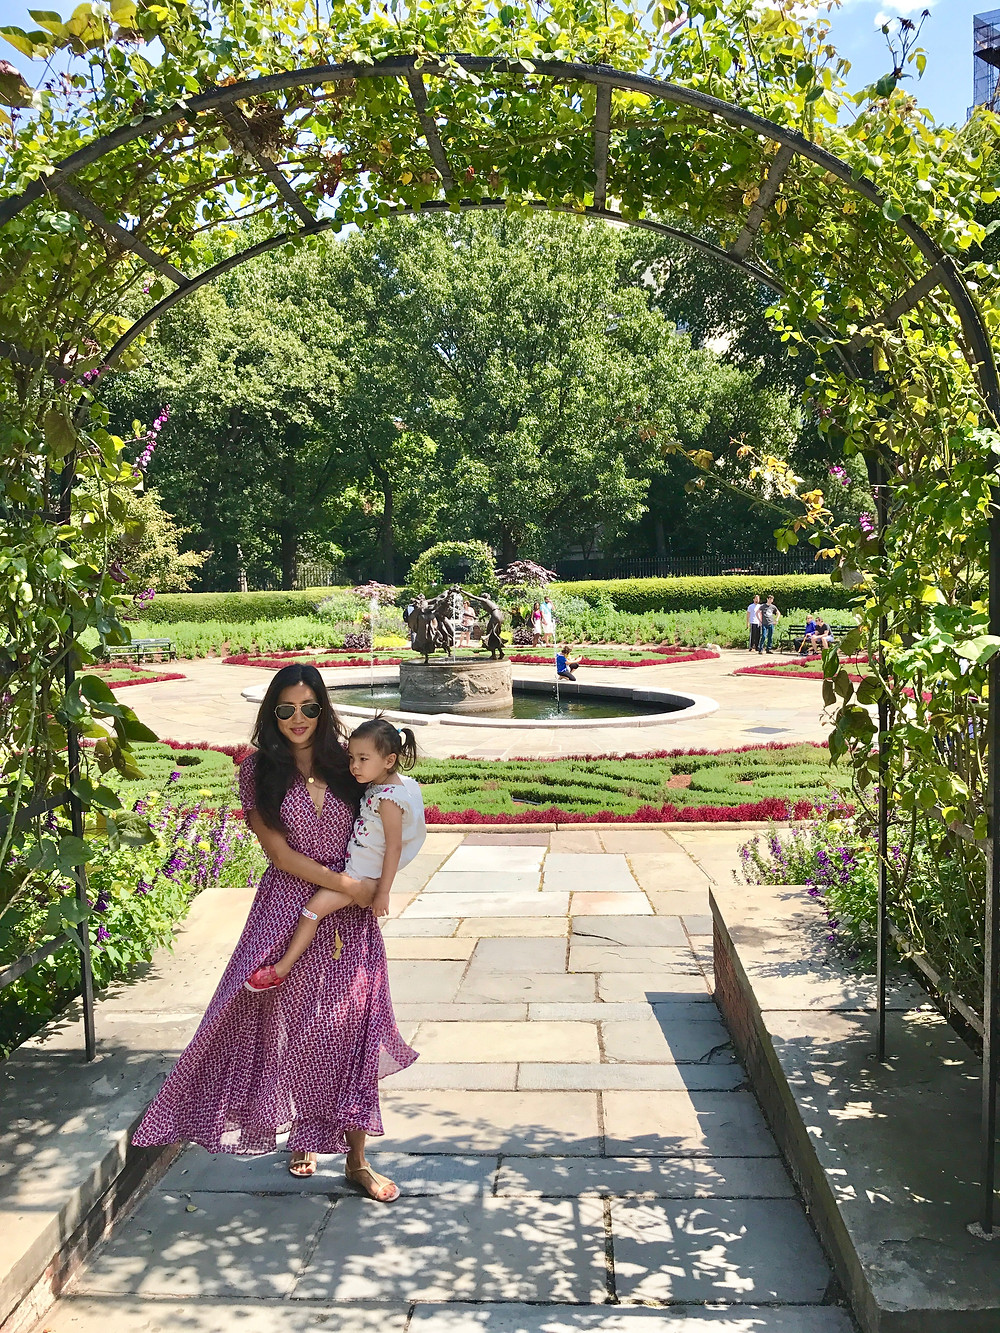 Central Park, Conservancy Garden, sirin bloom, mommy and me, fashion, mom style, kid style, NYC kids, NYC summer